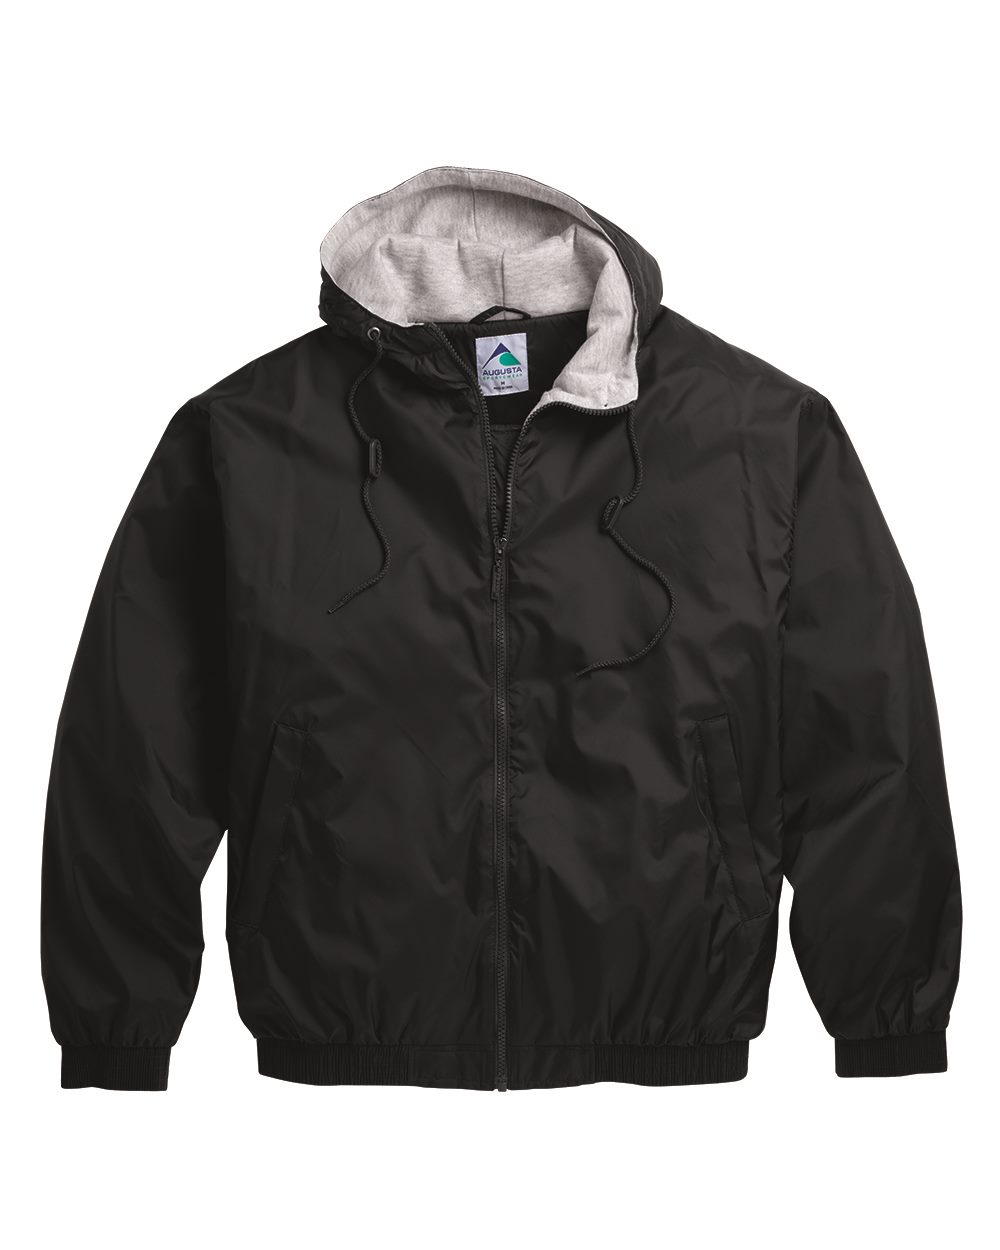 Harriton M740 Fleece-Lined Nylon Jacket $21.23 - Men's Outerwear